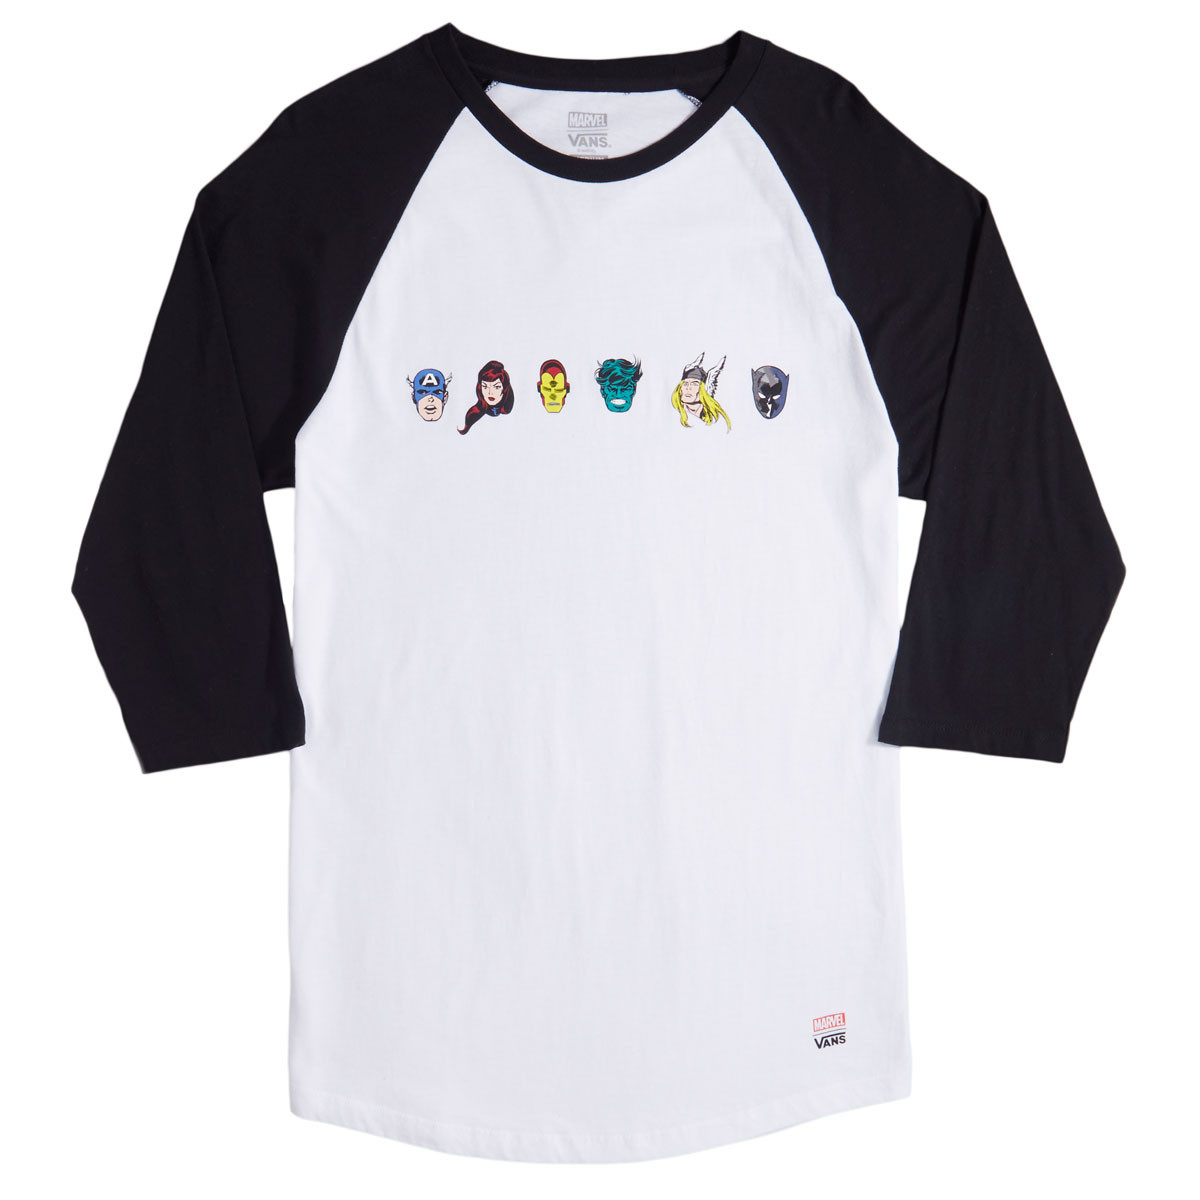 513bf774a2 Vans x Marvel Raglan T-Shirt - White Black